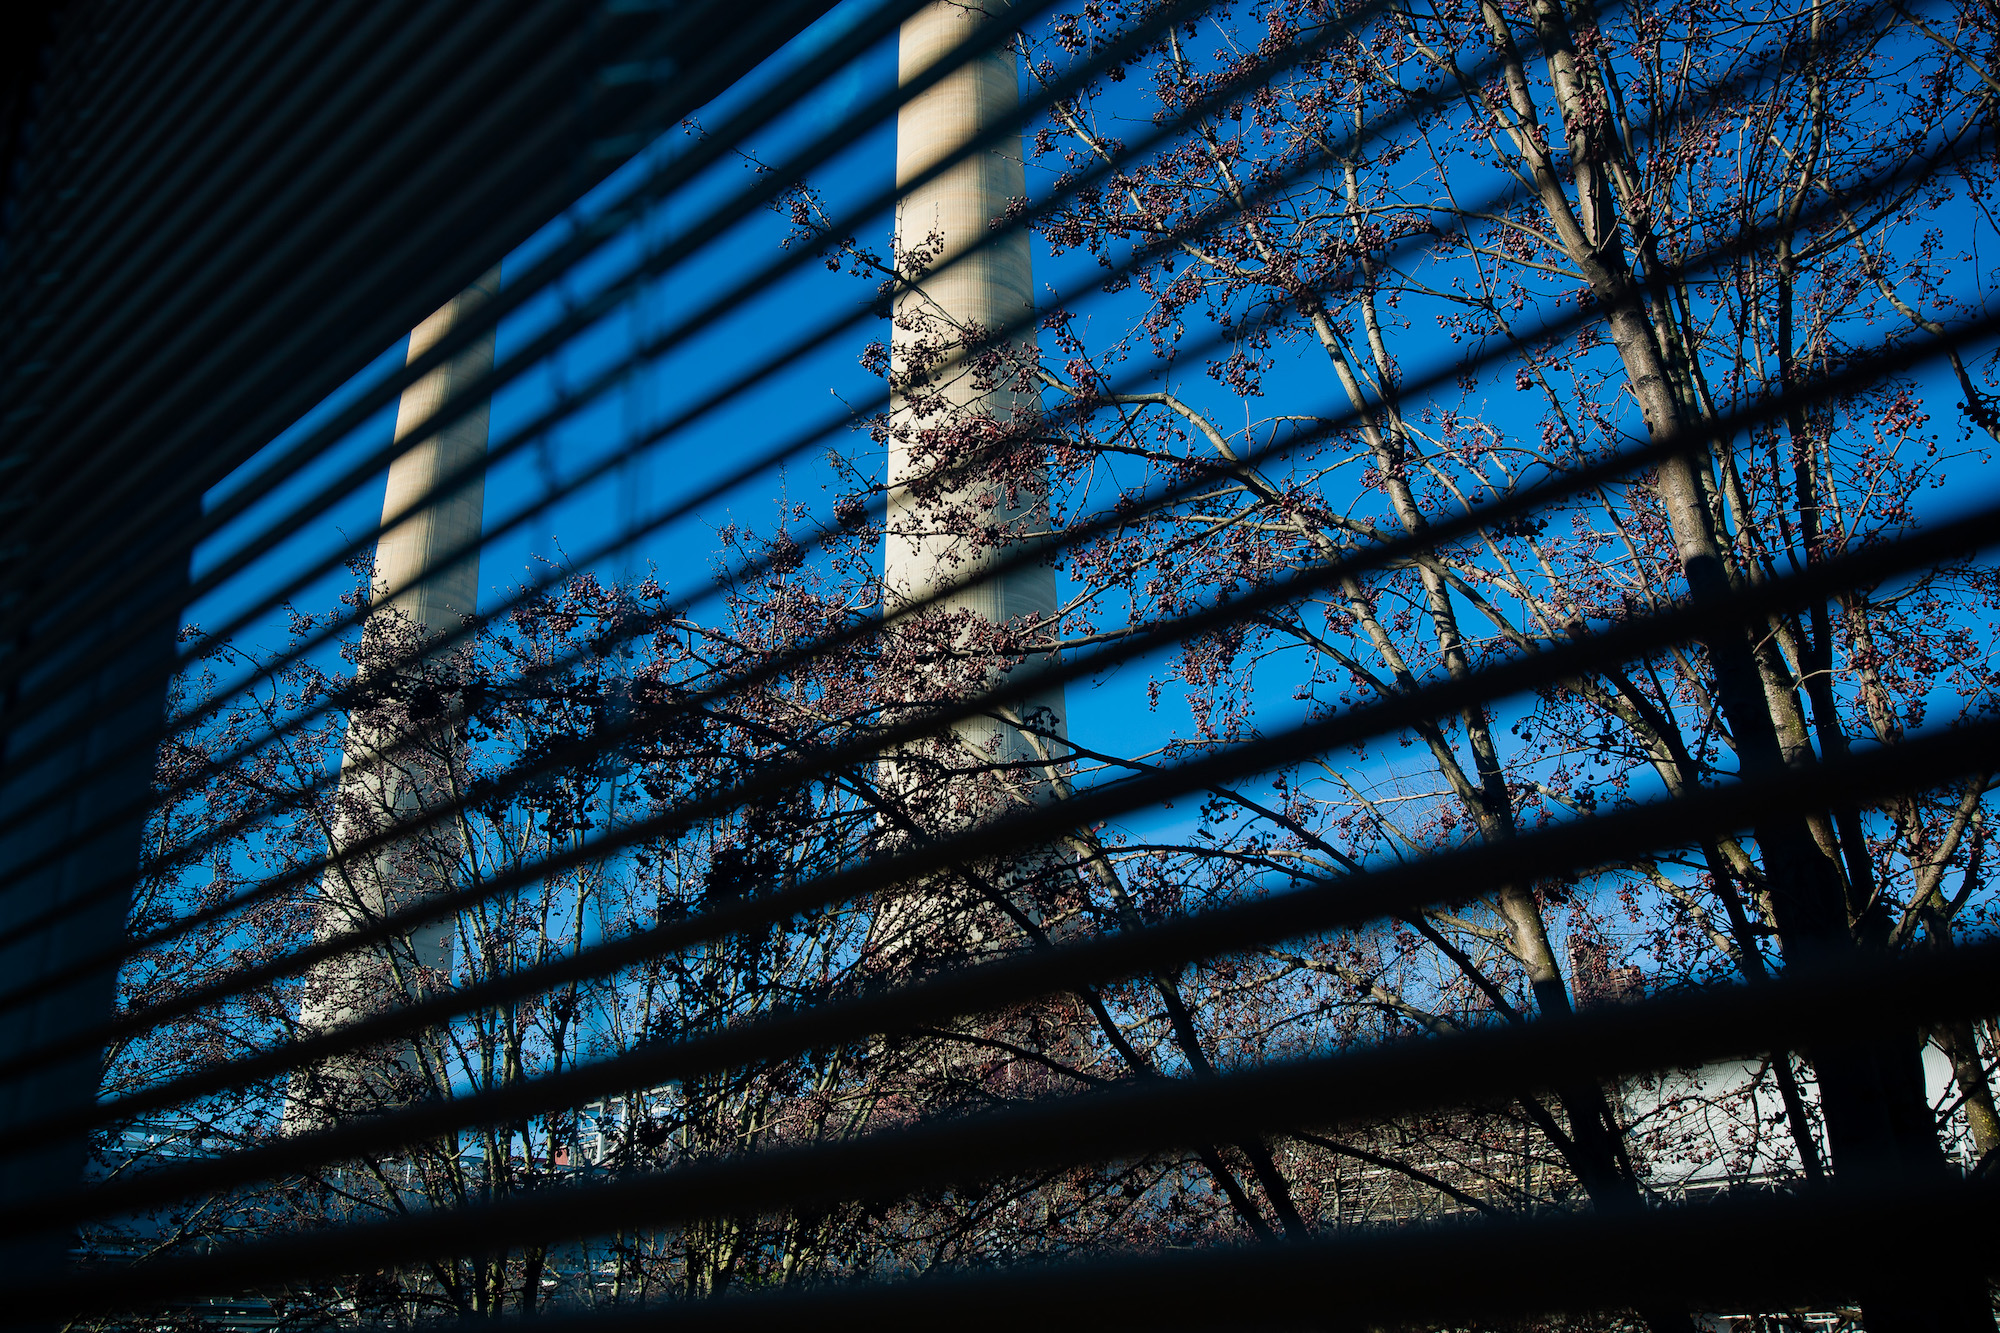 A view through office blinds of the stacks at the TVA Fossil Plant in Kingston, Tennessee.